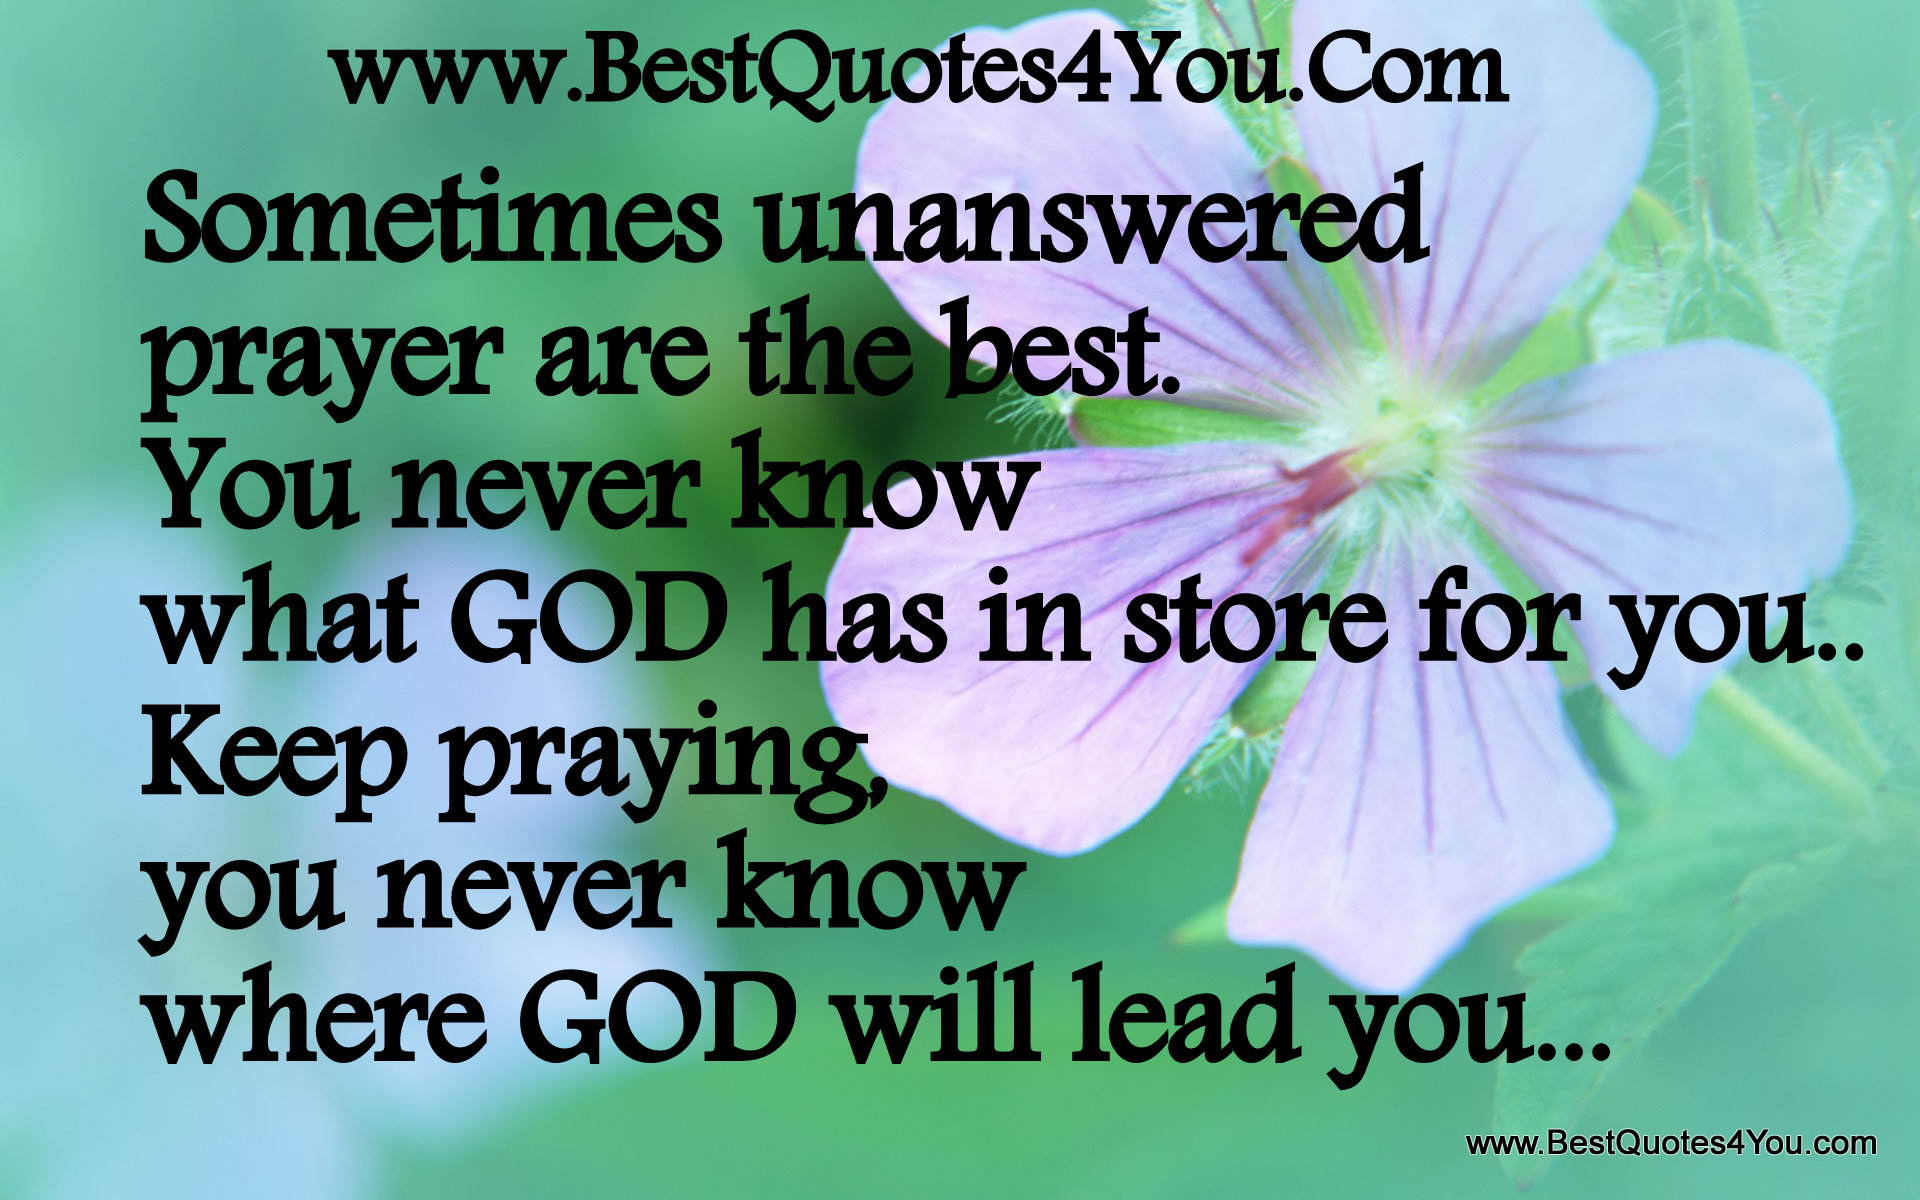 Sometimes Unanswered Prayer Are The Best, You Never Know What God Has In Store For You, Keep Praying You Never Know Where GOD Will Lead You